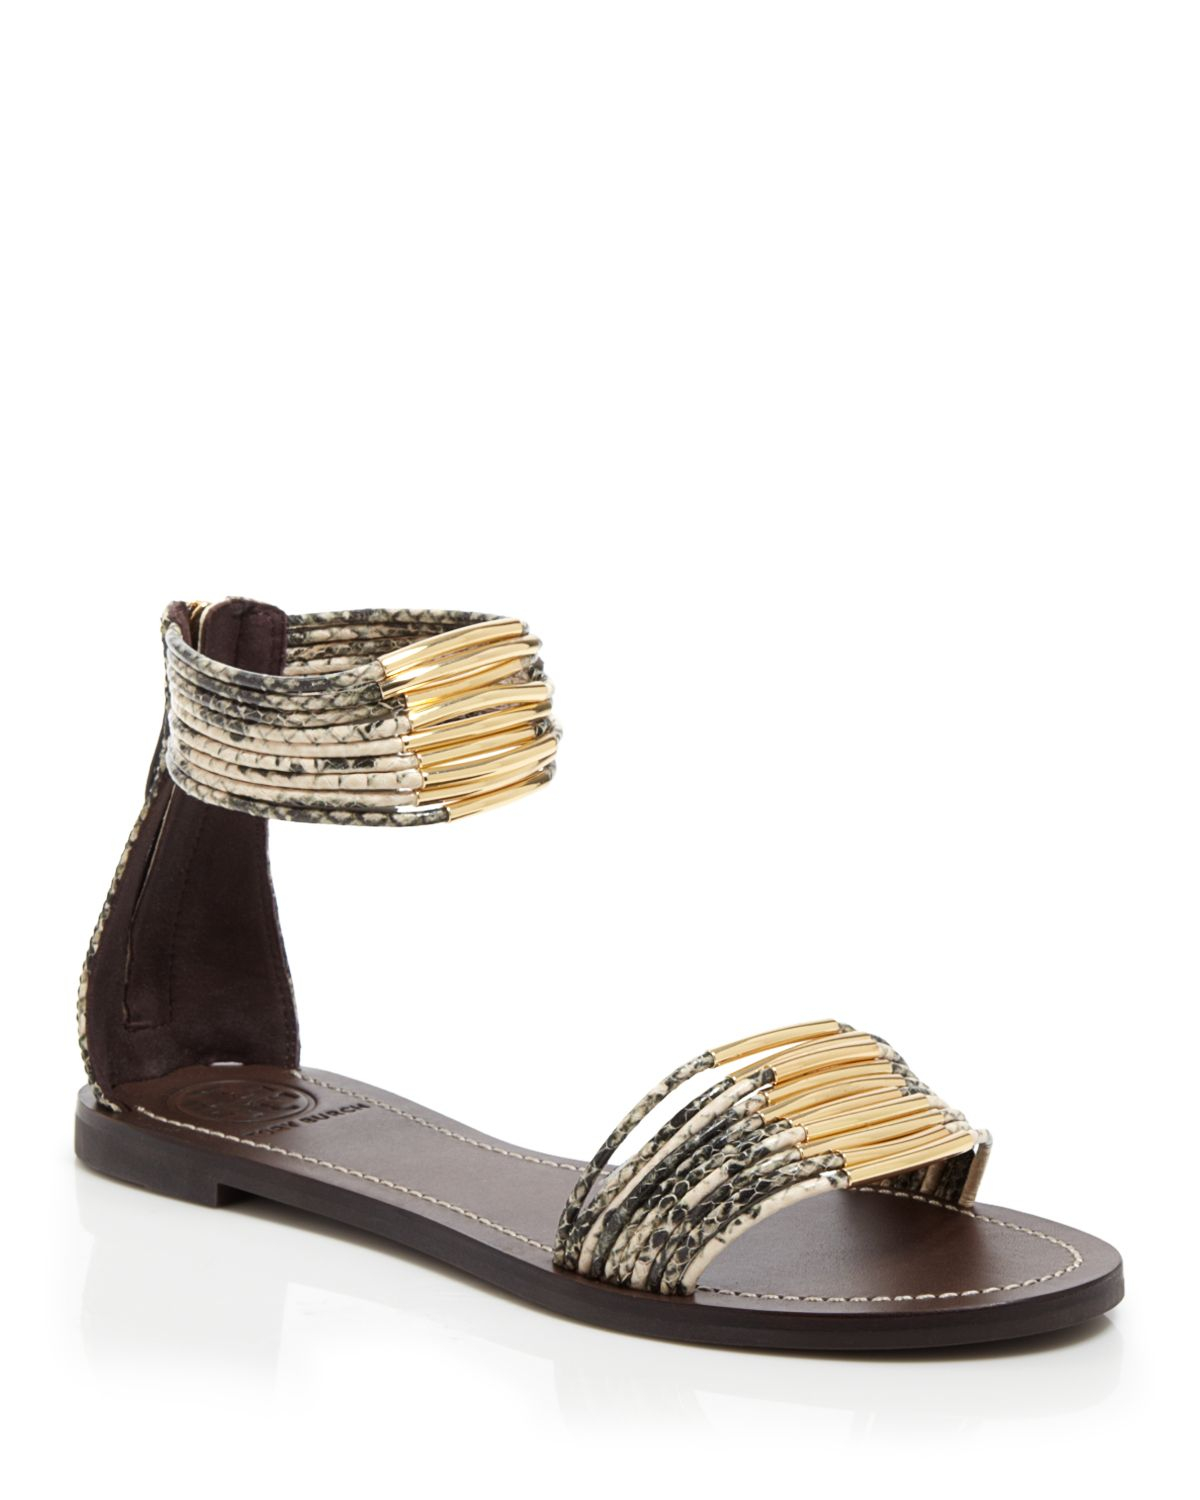 Michael Kors Collection Ring Sandals